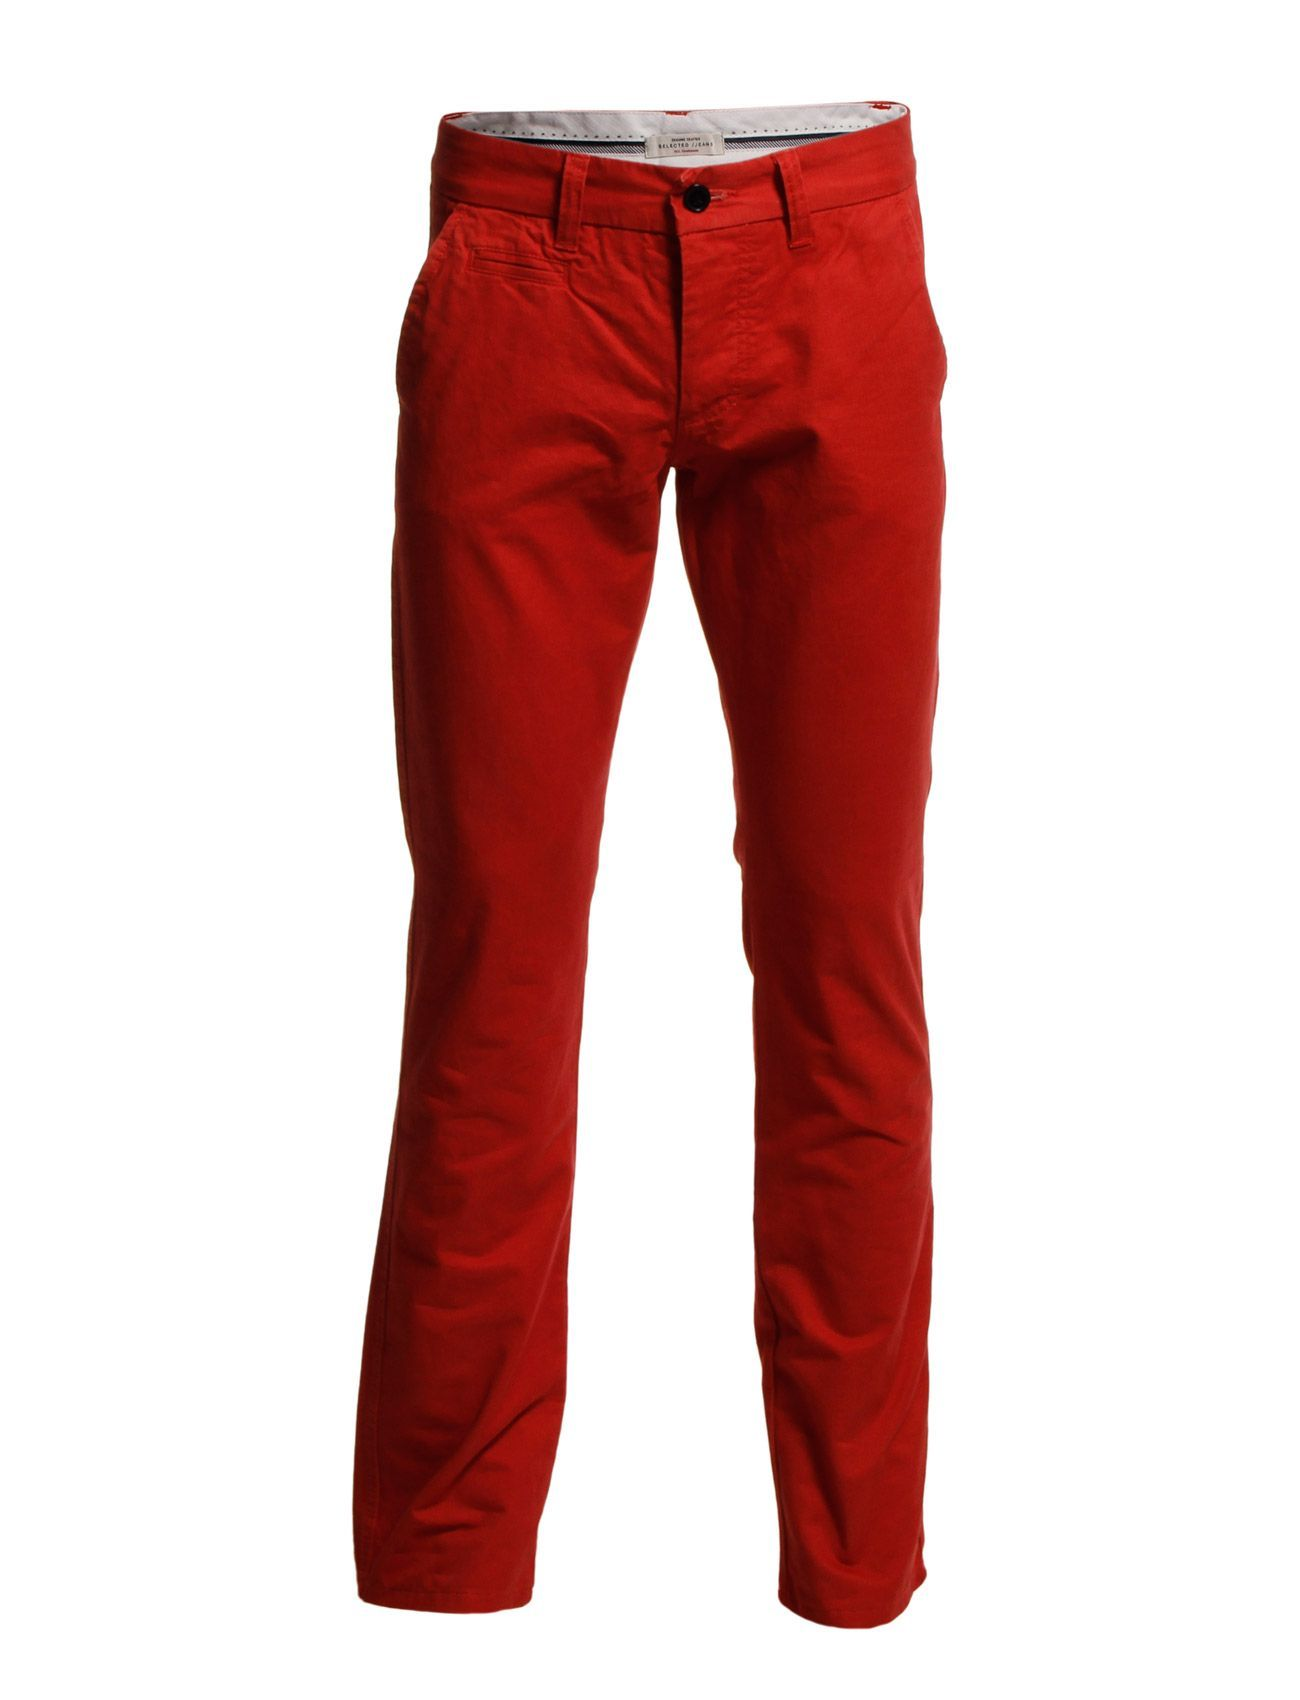 Three Paris Cinnabar Chino Pants Noos C